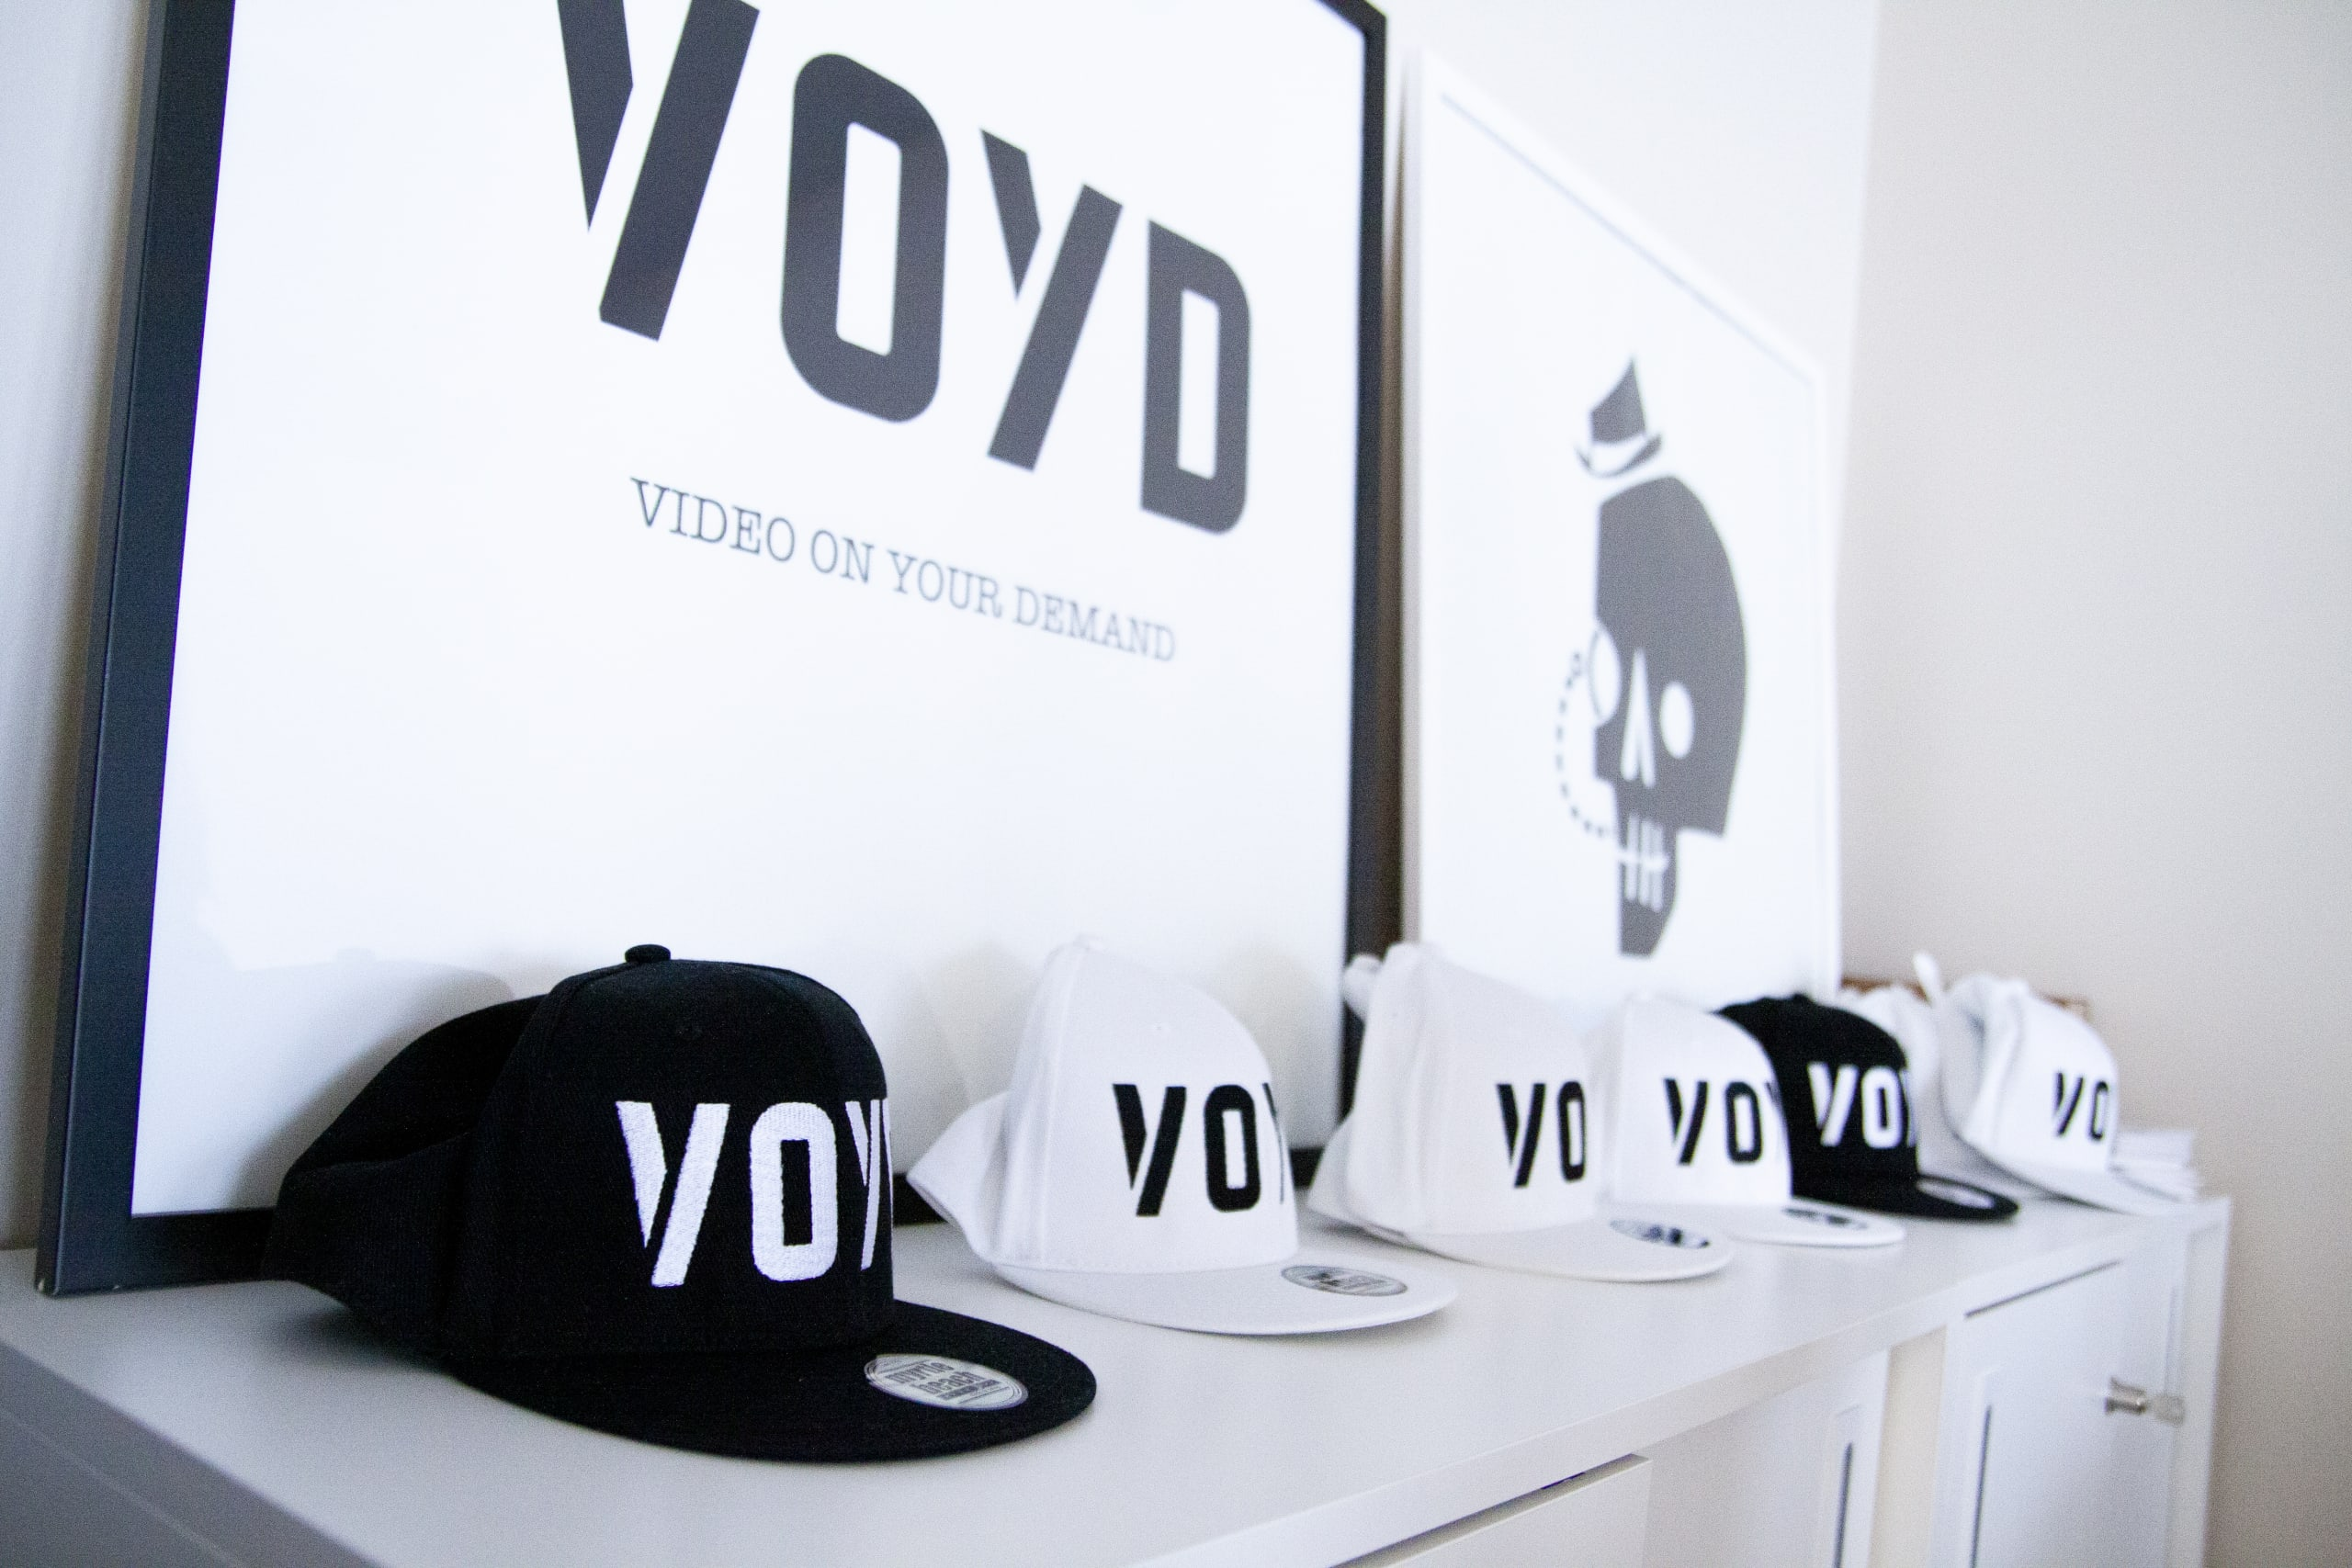 VOYD - Video on Your Demand